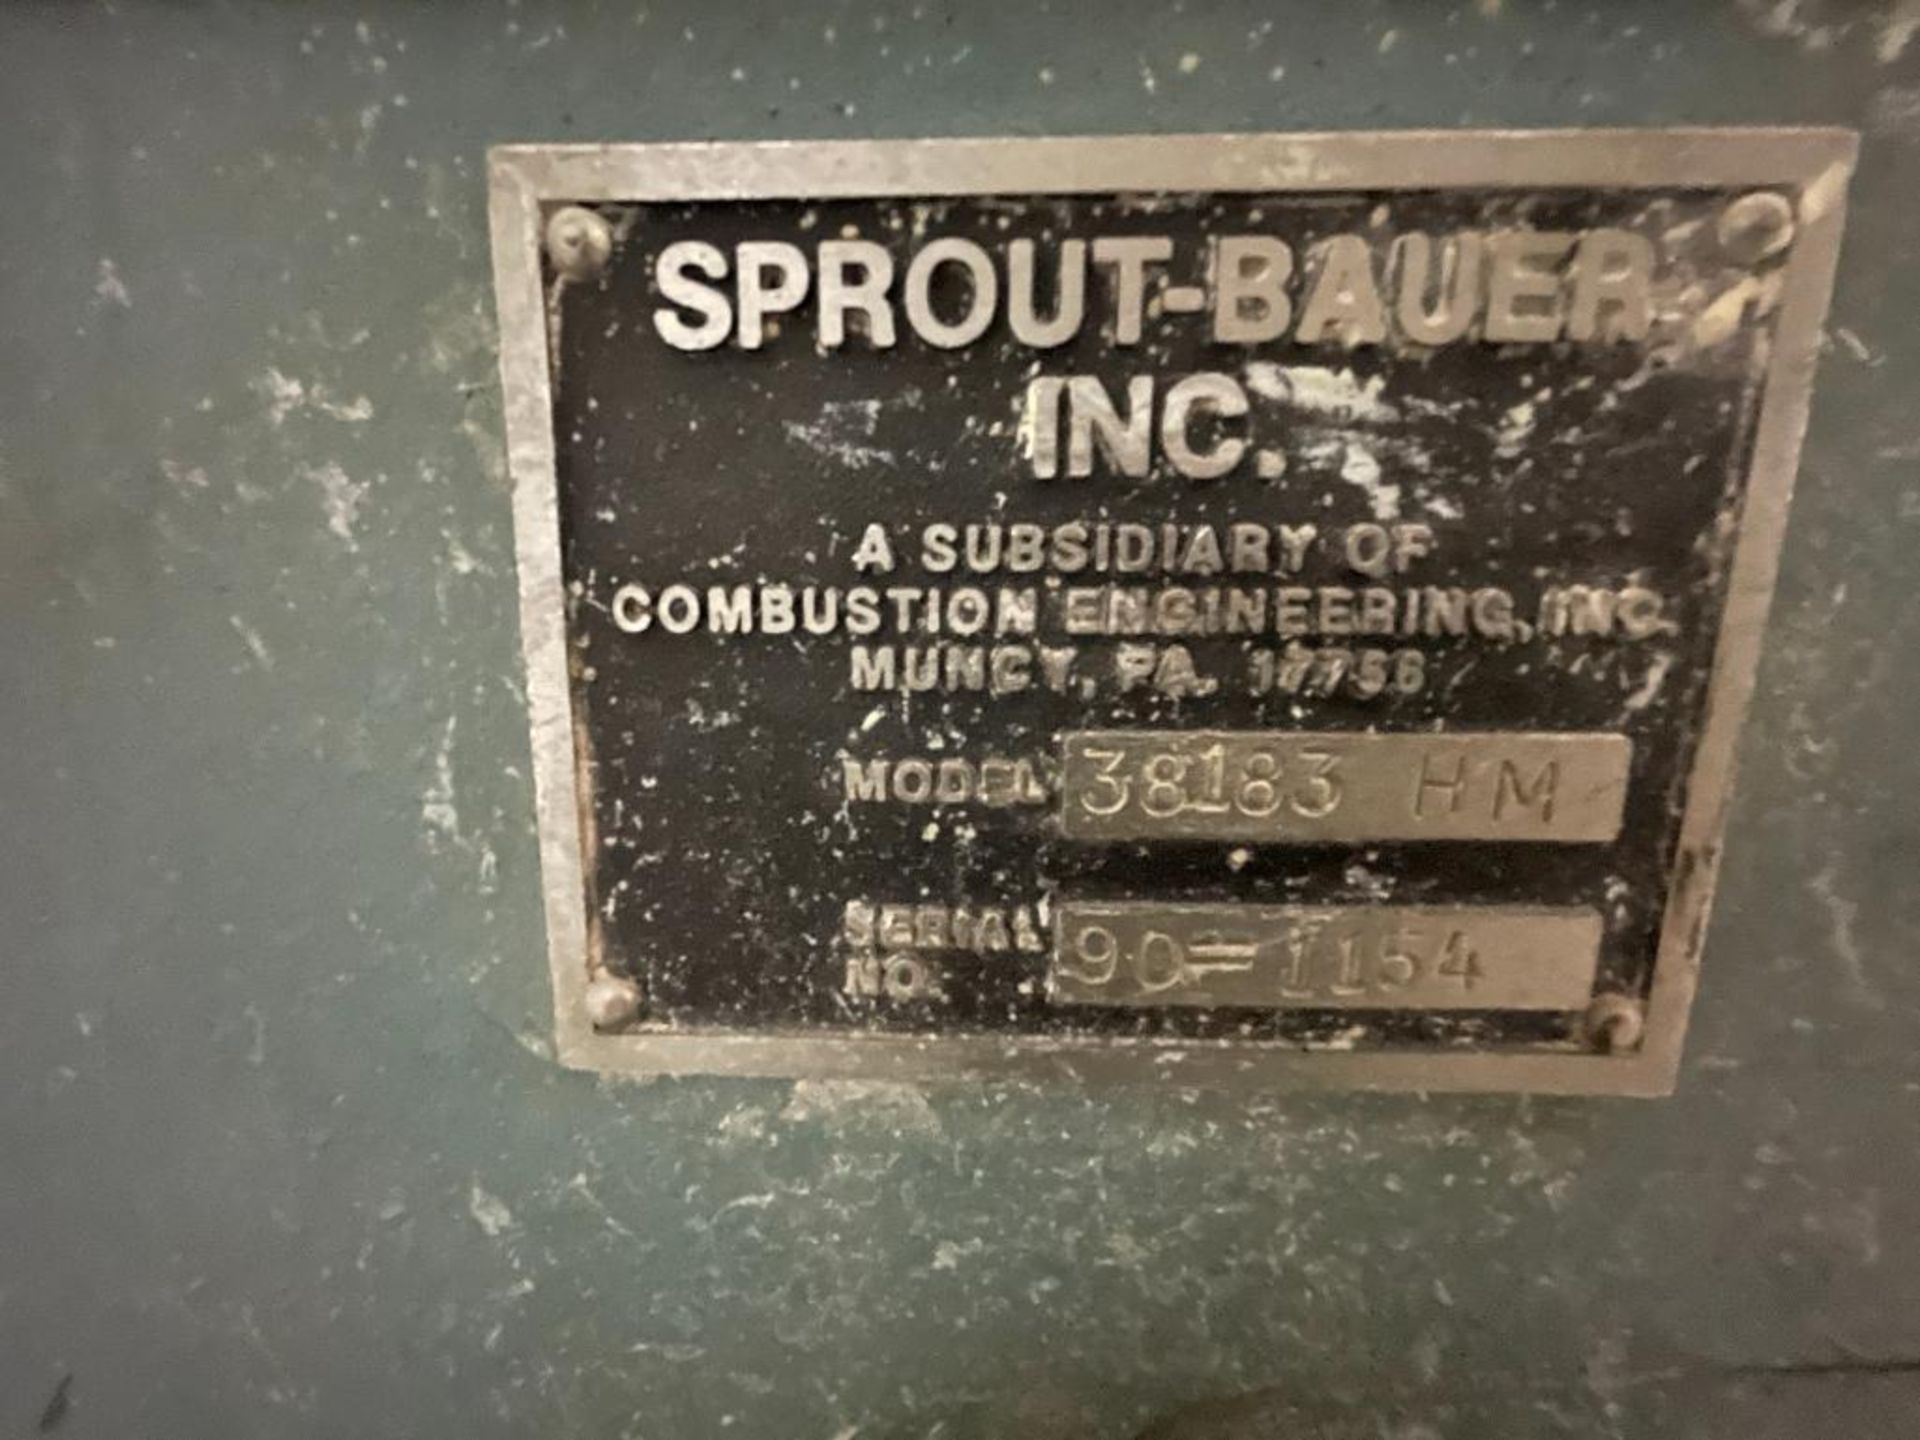 Sprout-Bauer hammermill, 100 hp - Image 16 of 25